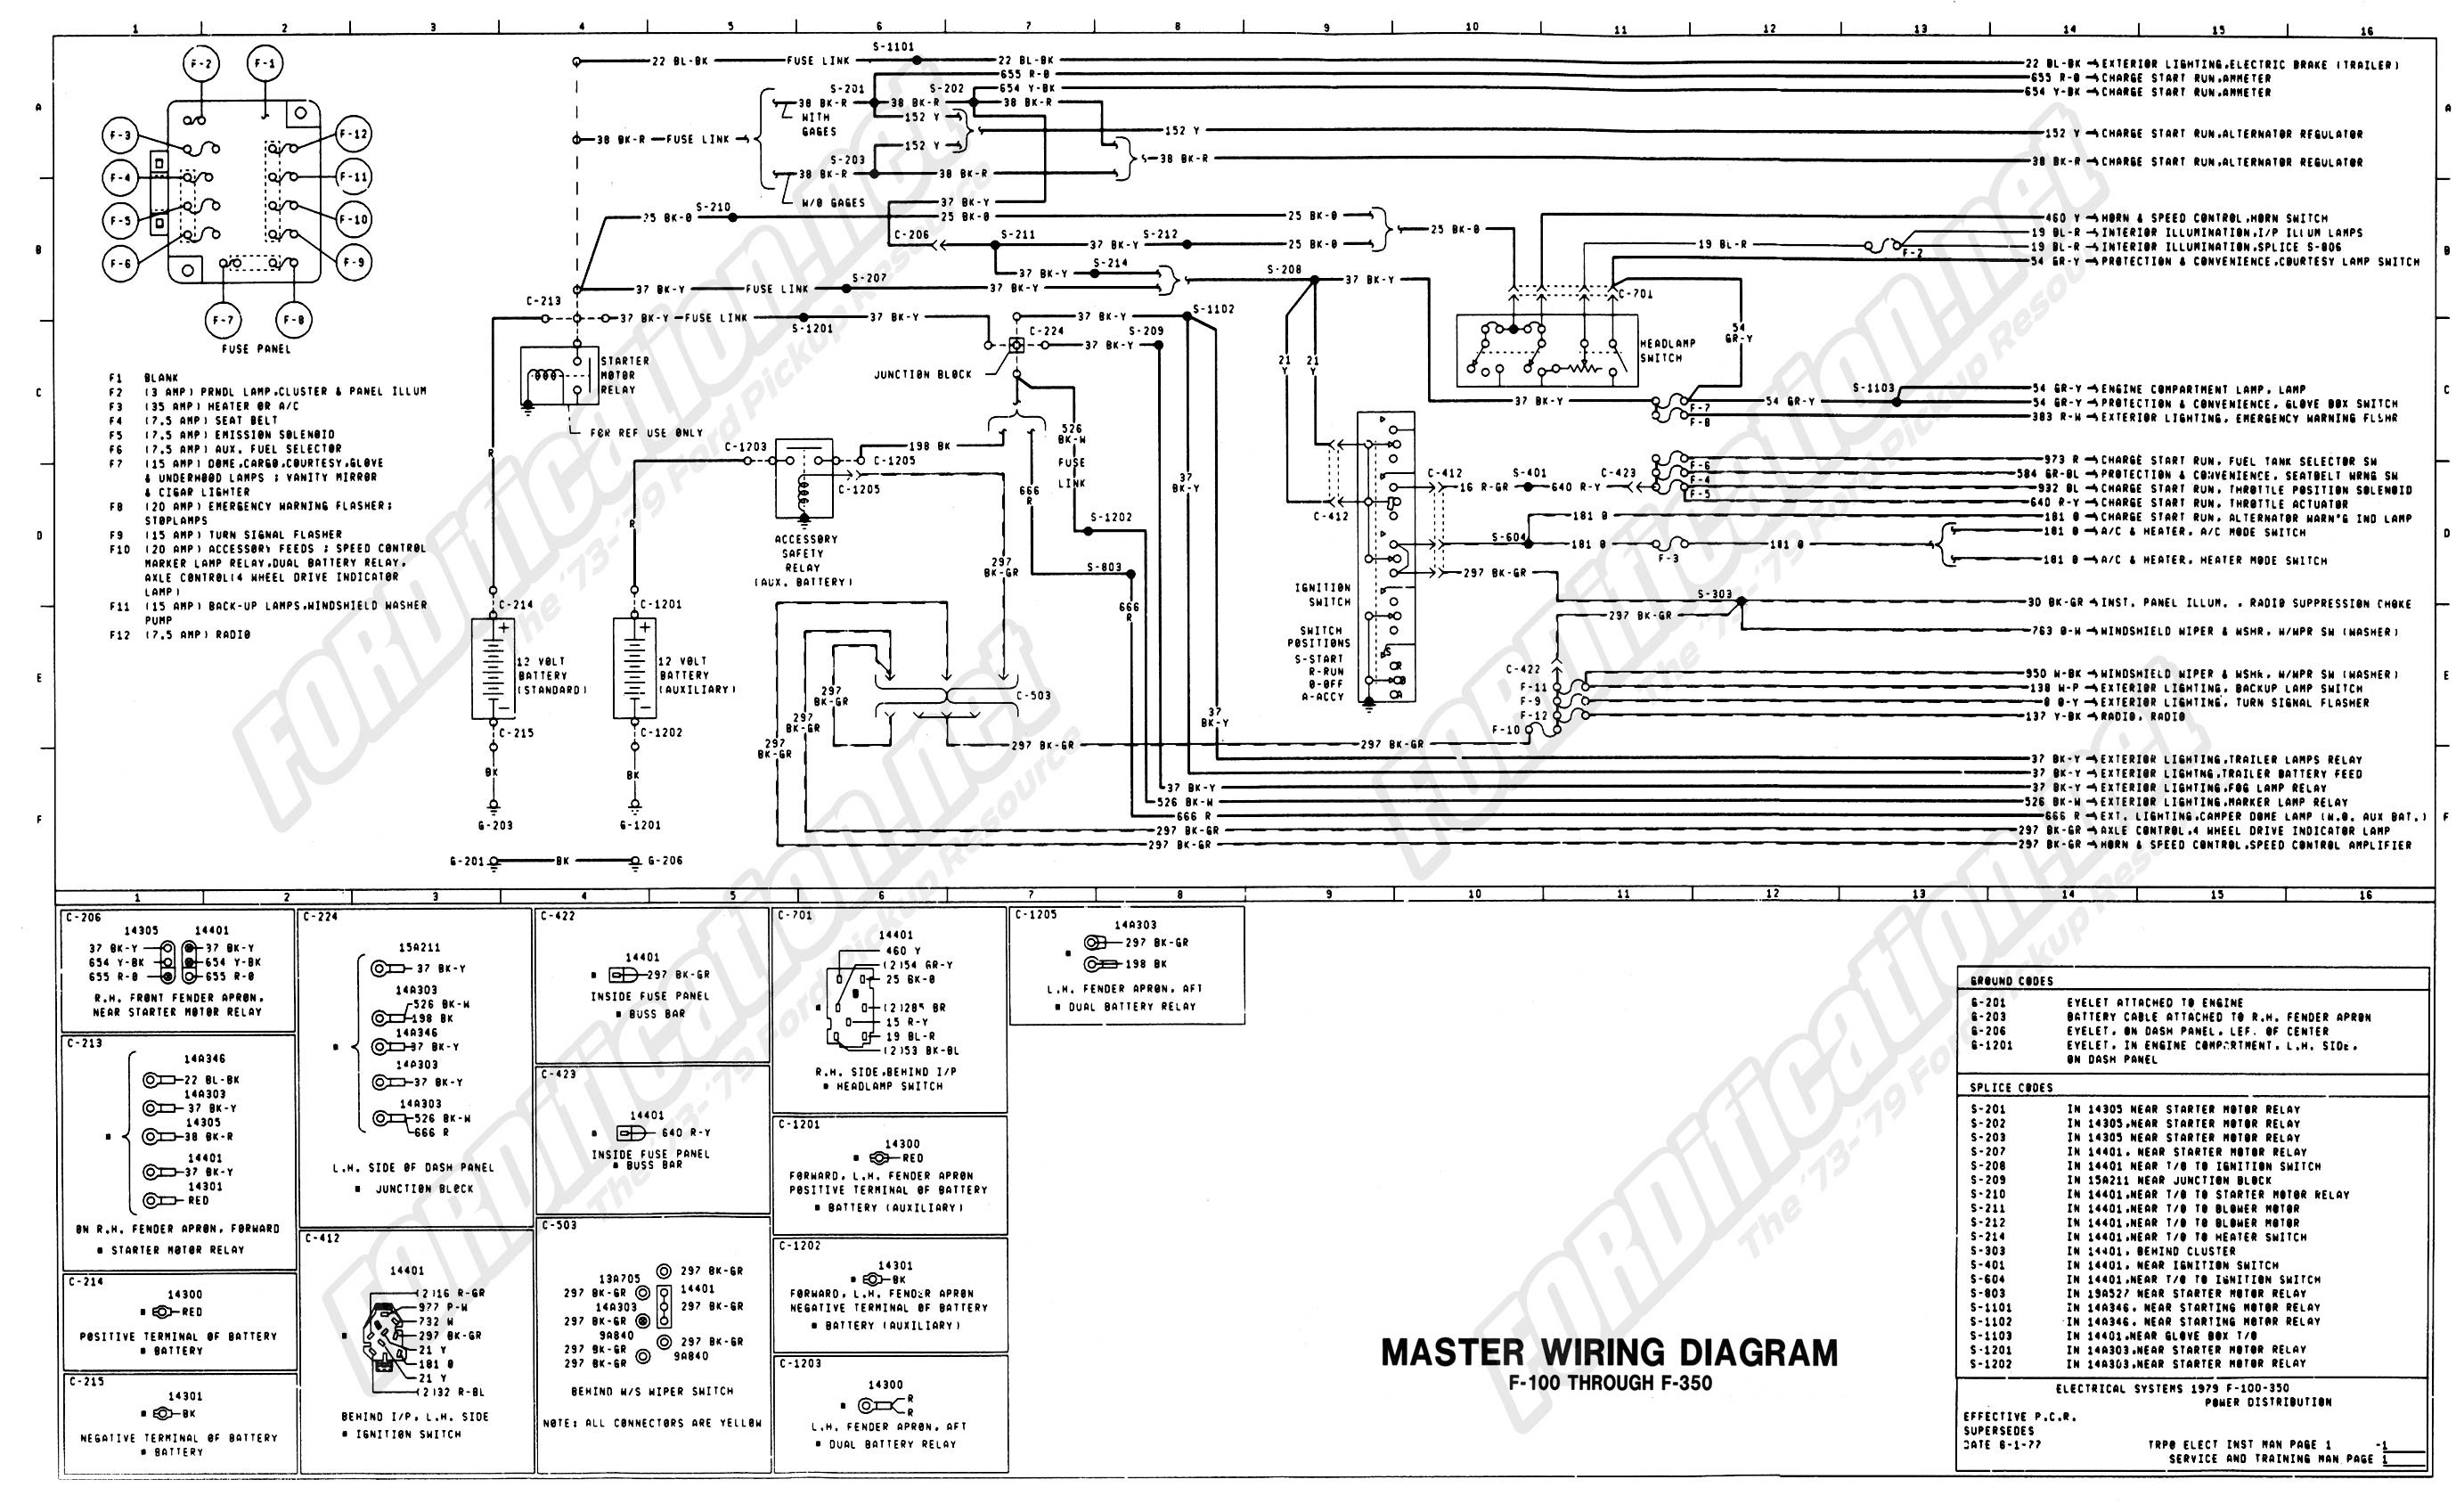 Wiring 79master 1of9 For 79 Chevy Truck Diagram